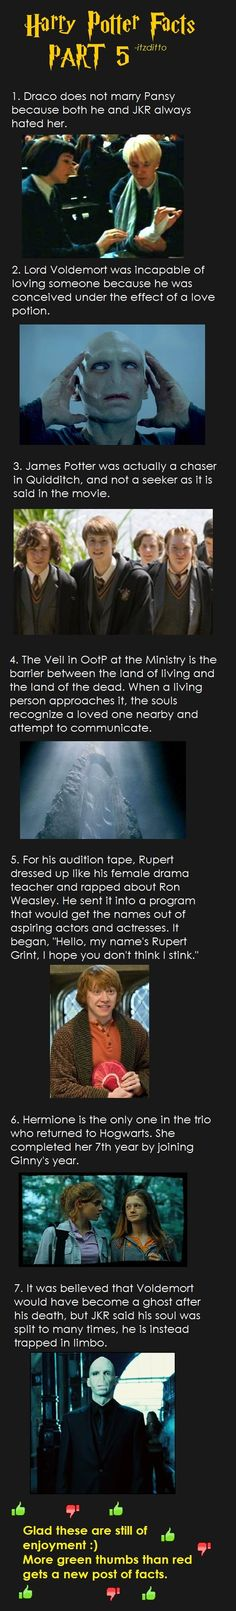 Harry Potter facts - Part 5 :')